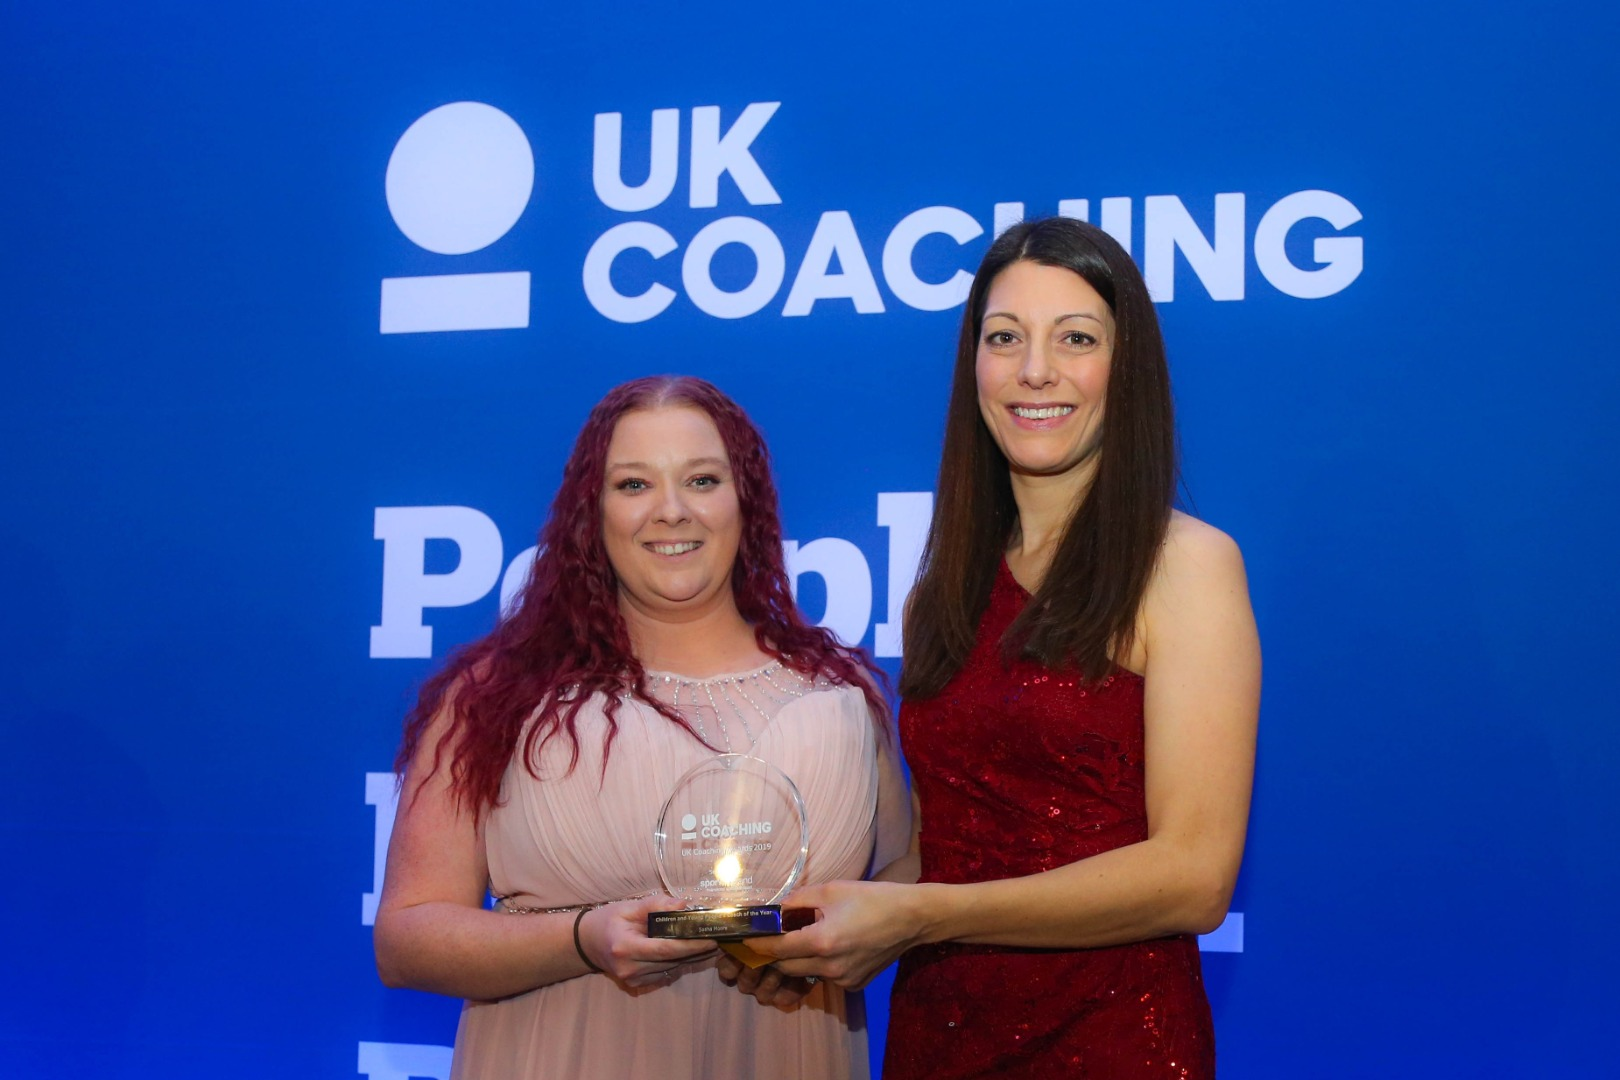 Lancashire and Greater Manchester coaches honoured at UK Coaching Awards